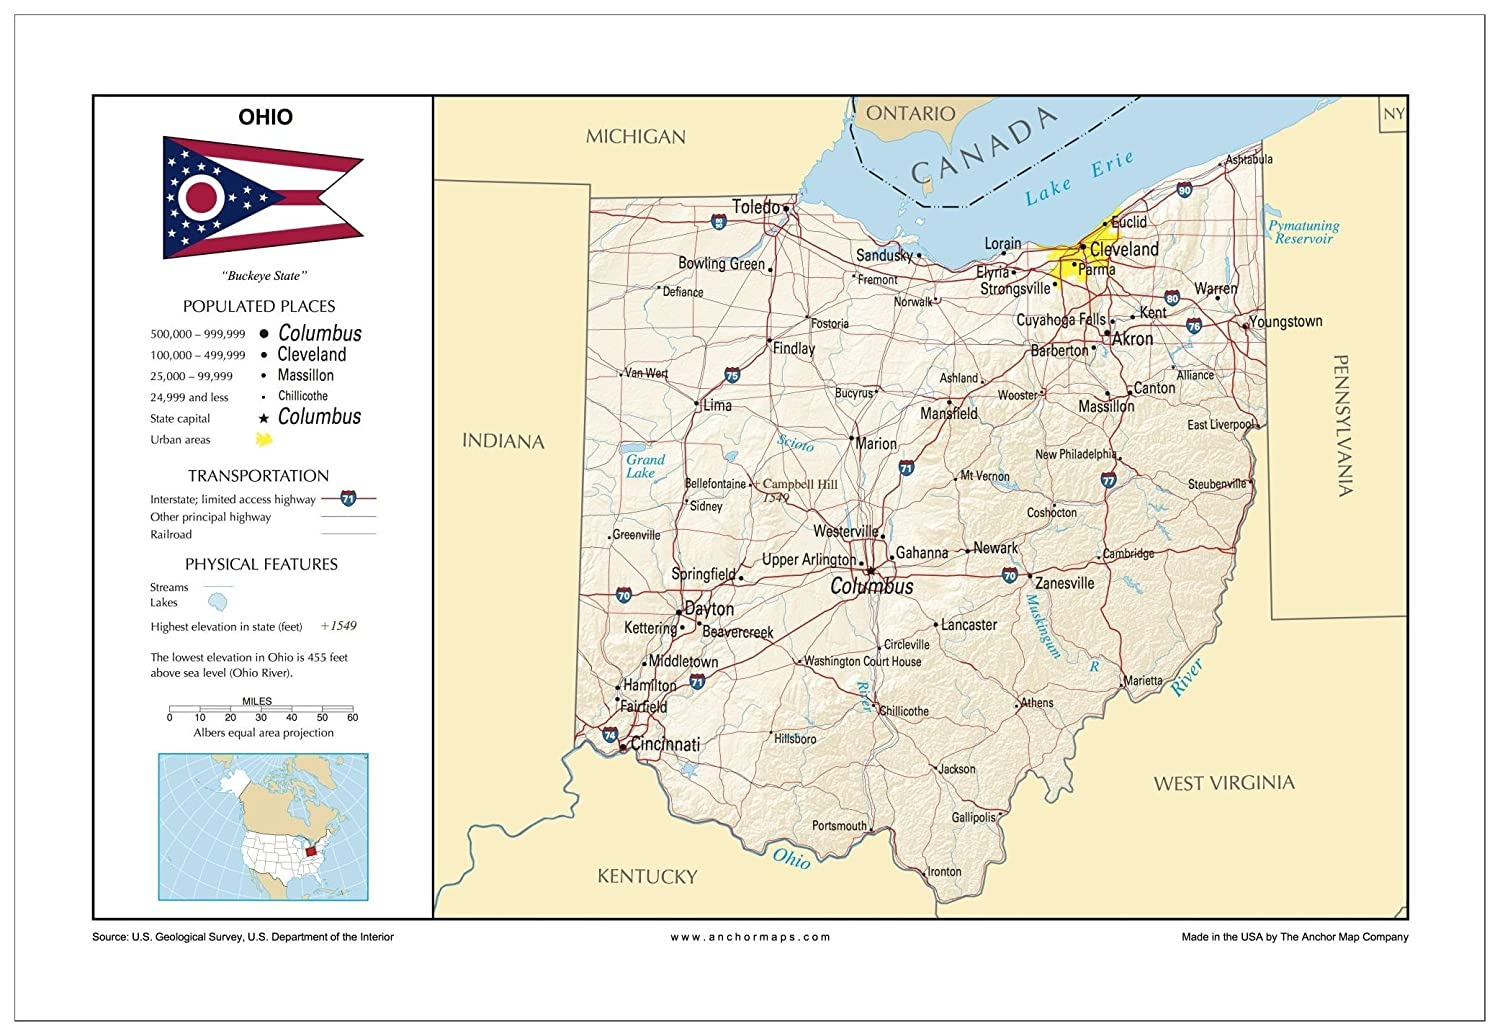 13x19 Ohio General Reference Wall Map - Anchor Maps USA Foundational on ohio wind farm map, boulder colorado usa map, roswell new mexico usa map, albany new york usa map, el paso texas usa map, new orleans louisiana usa map, providence rhode island usa map, birmingham alabama usa map, billings montana usa map, nashville tennessee usa map, wichita kansas usa map, omaha nebraska usa map, duluth minnesota usa map, salt lake city utah usa map, buffalo new york usa map, cleveland skyline, tacoma washington usa map, pittsburgh pennsylvania usa map, boston massachusetts usa map, st paul minnesota usa map,